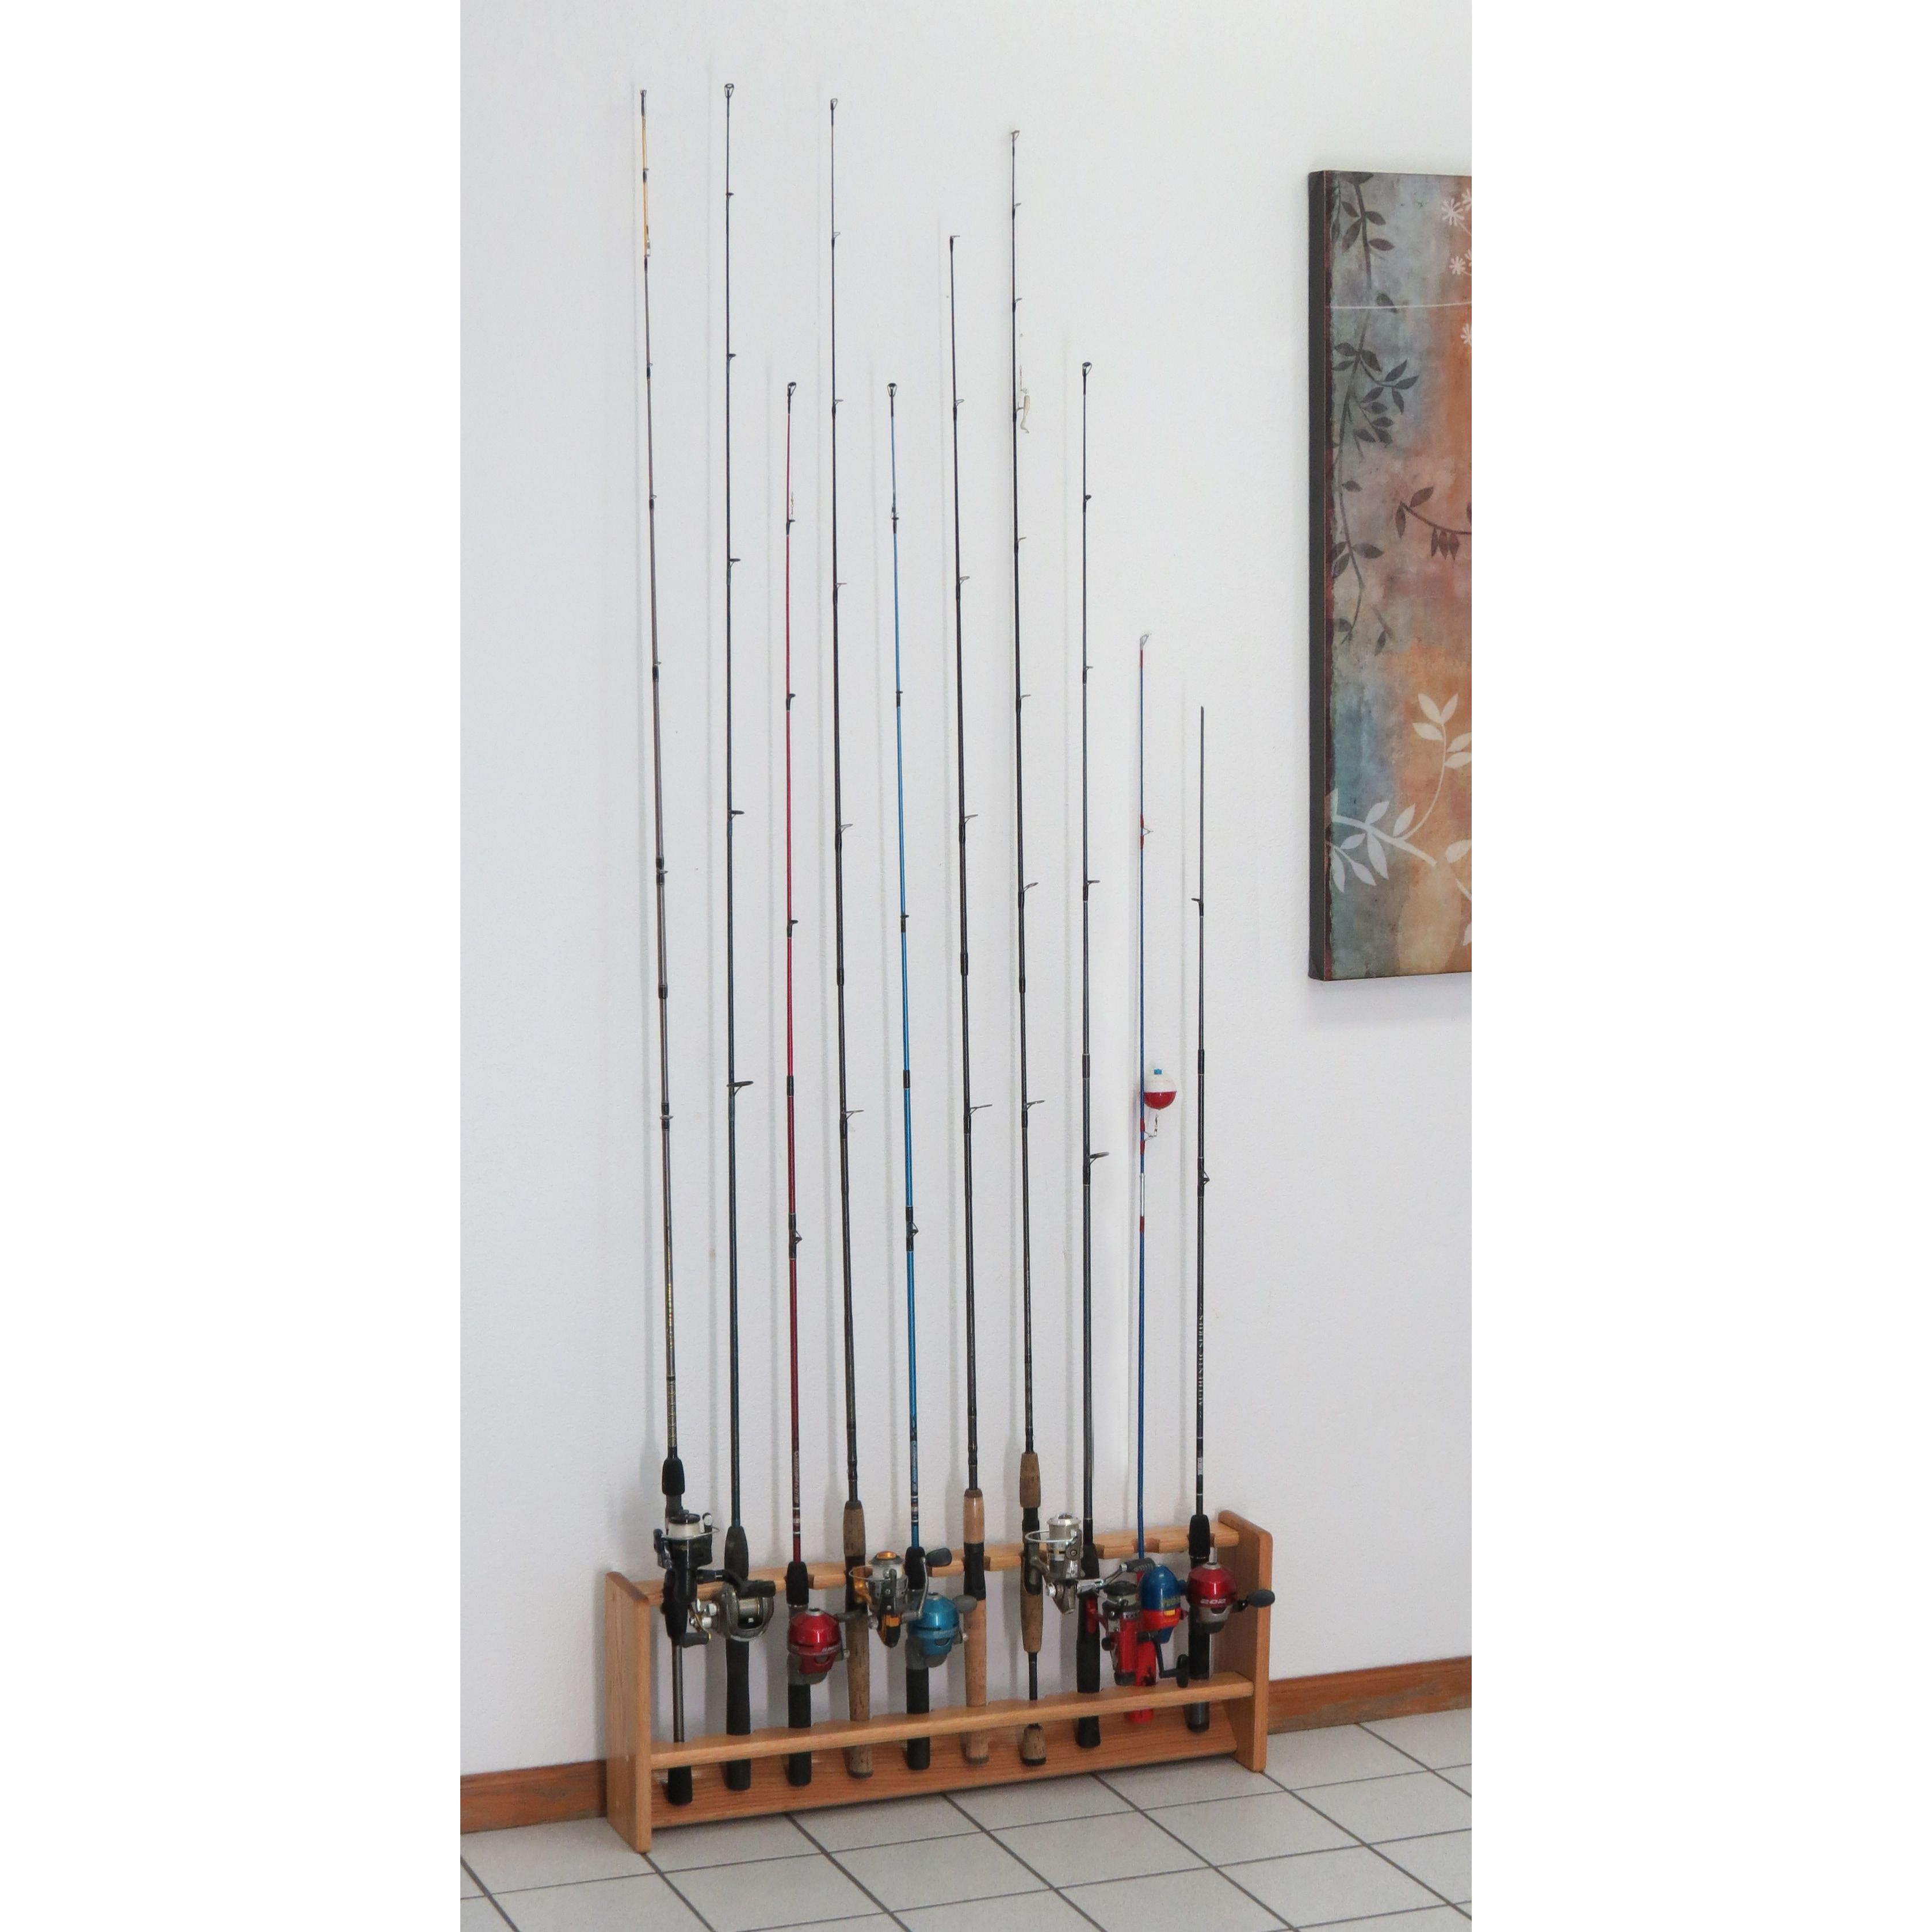 Fishing Rod Rack 10 Rods 4 Finish Options With Images Fishing Rod Rack Rod Rack Fishing Rod Holder